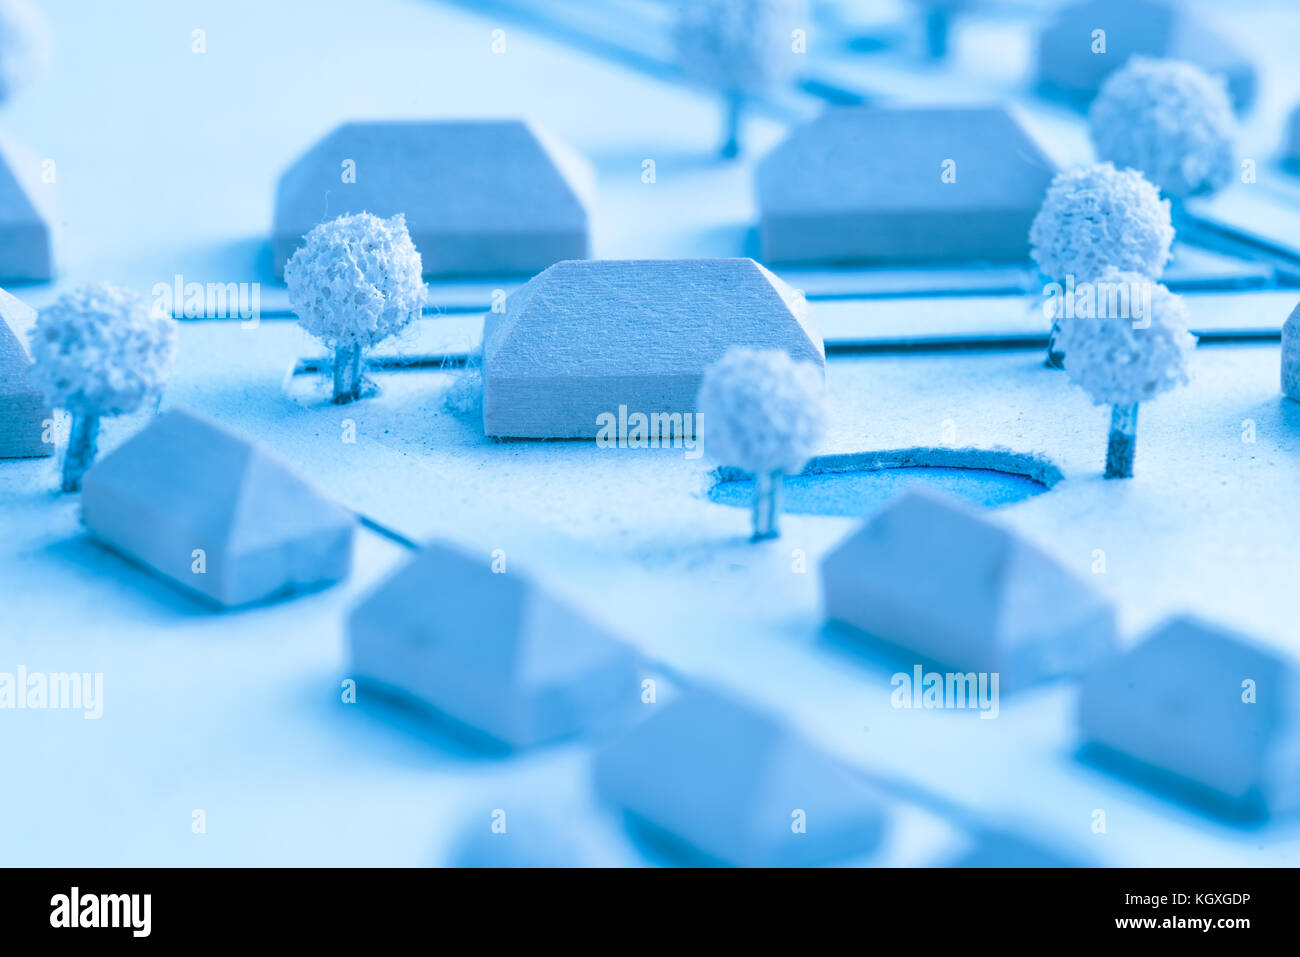 Architecture and Urban Planning Model - Stock Image